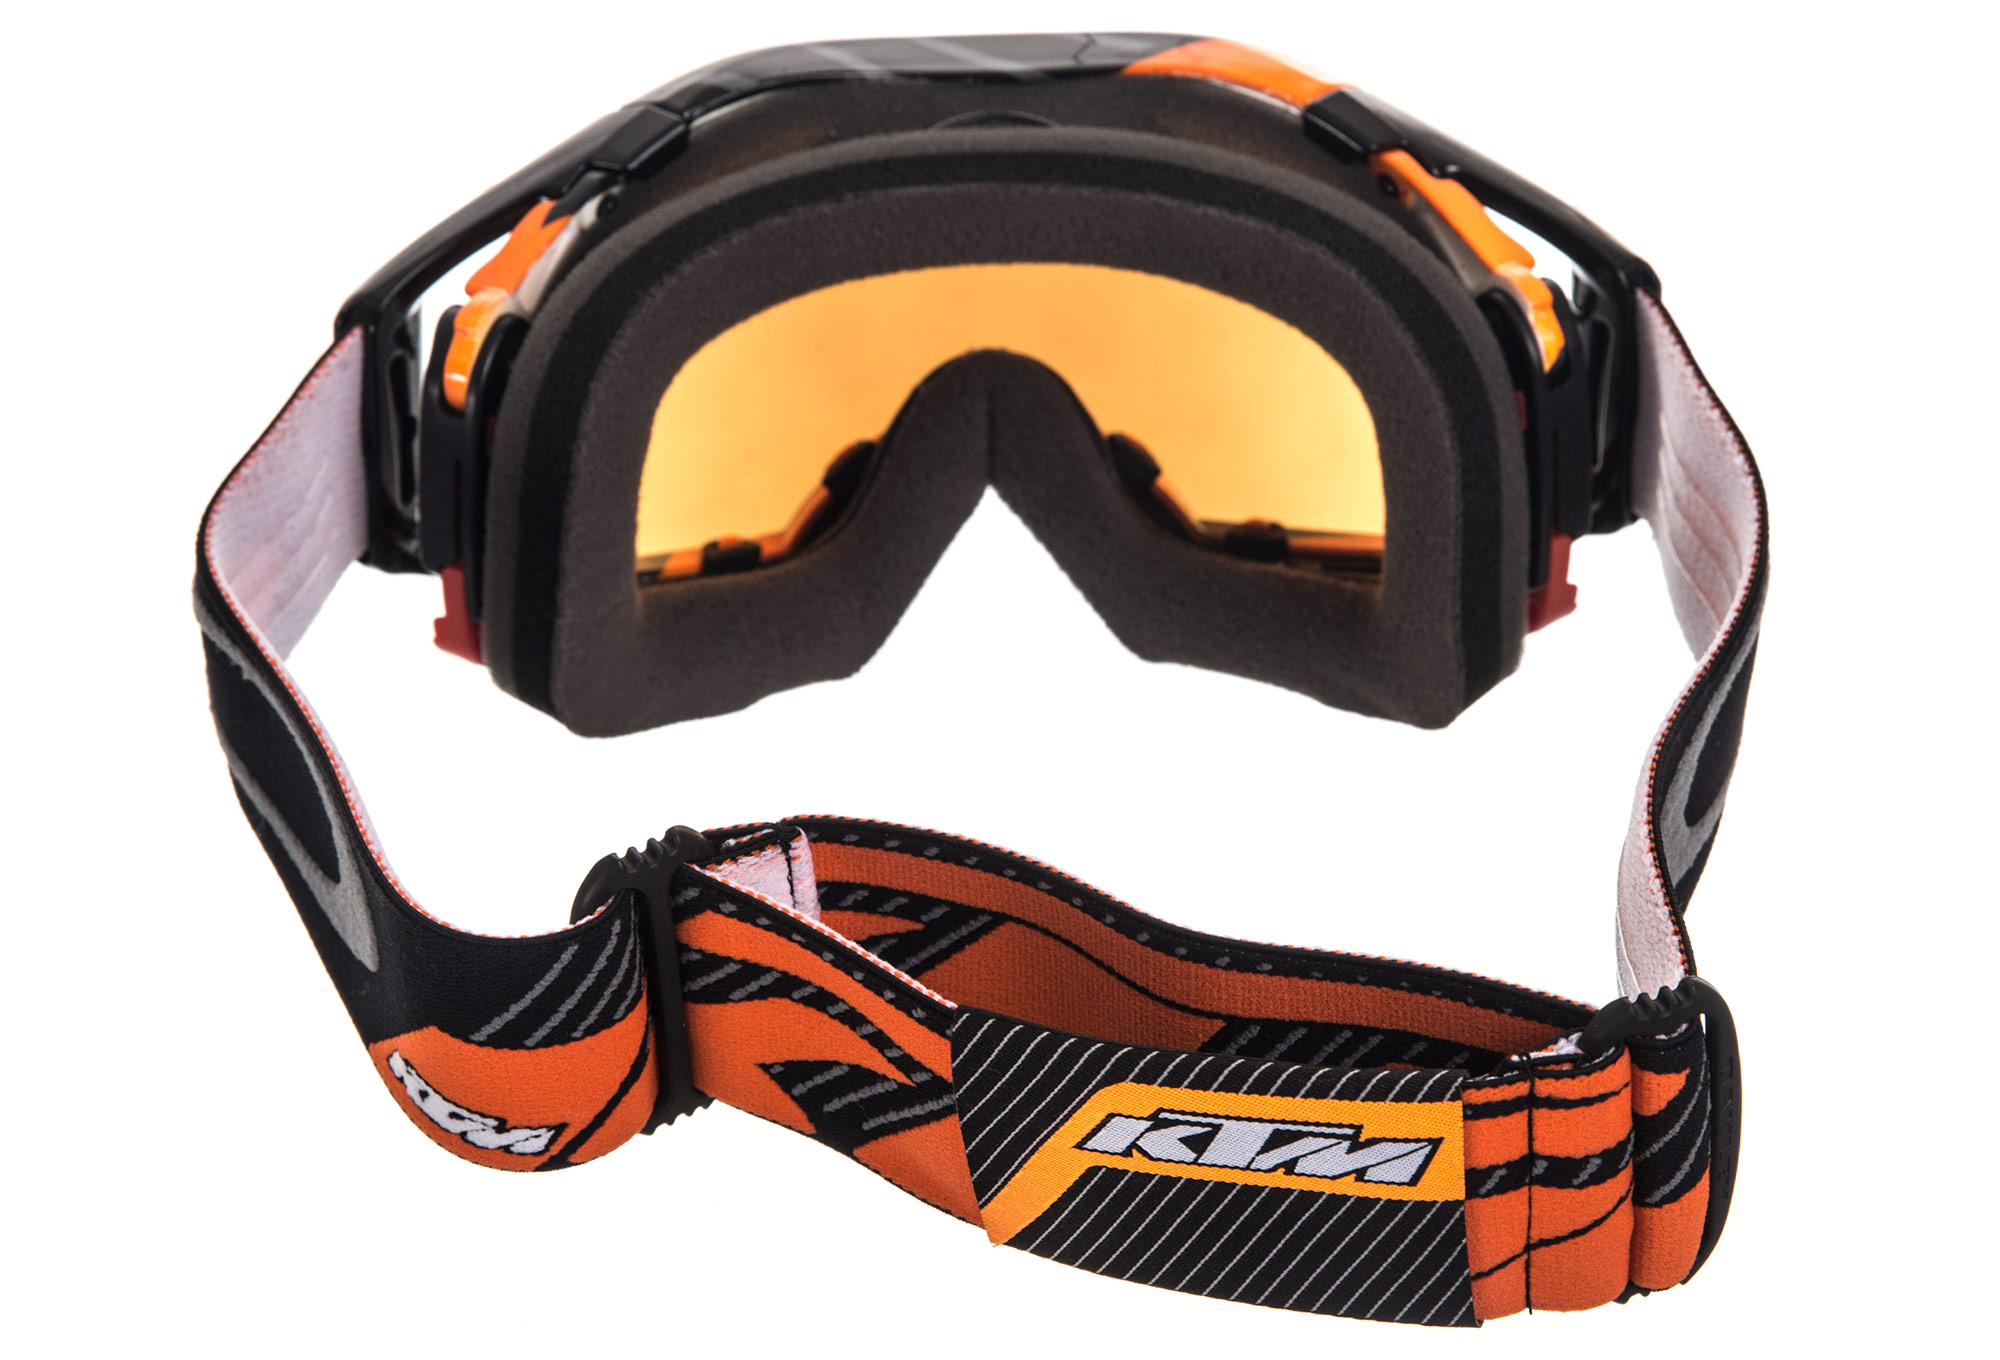 masque oakley airbrake mx ktm noir jaune iridium r f oo7046 03. Black Bedroom Furniture Sets. Home Design Ideas